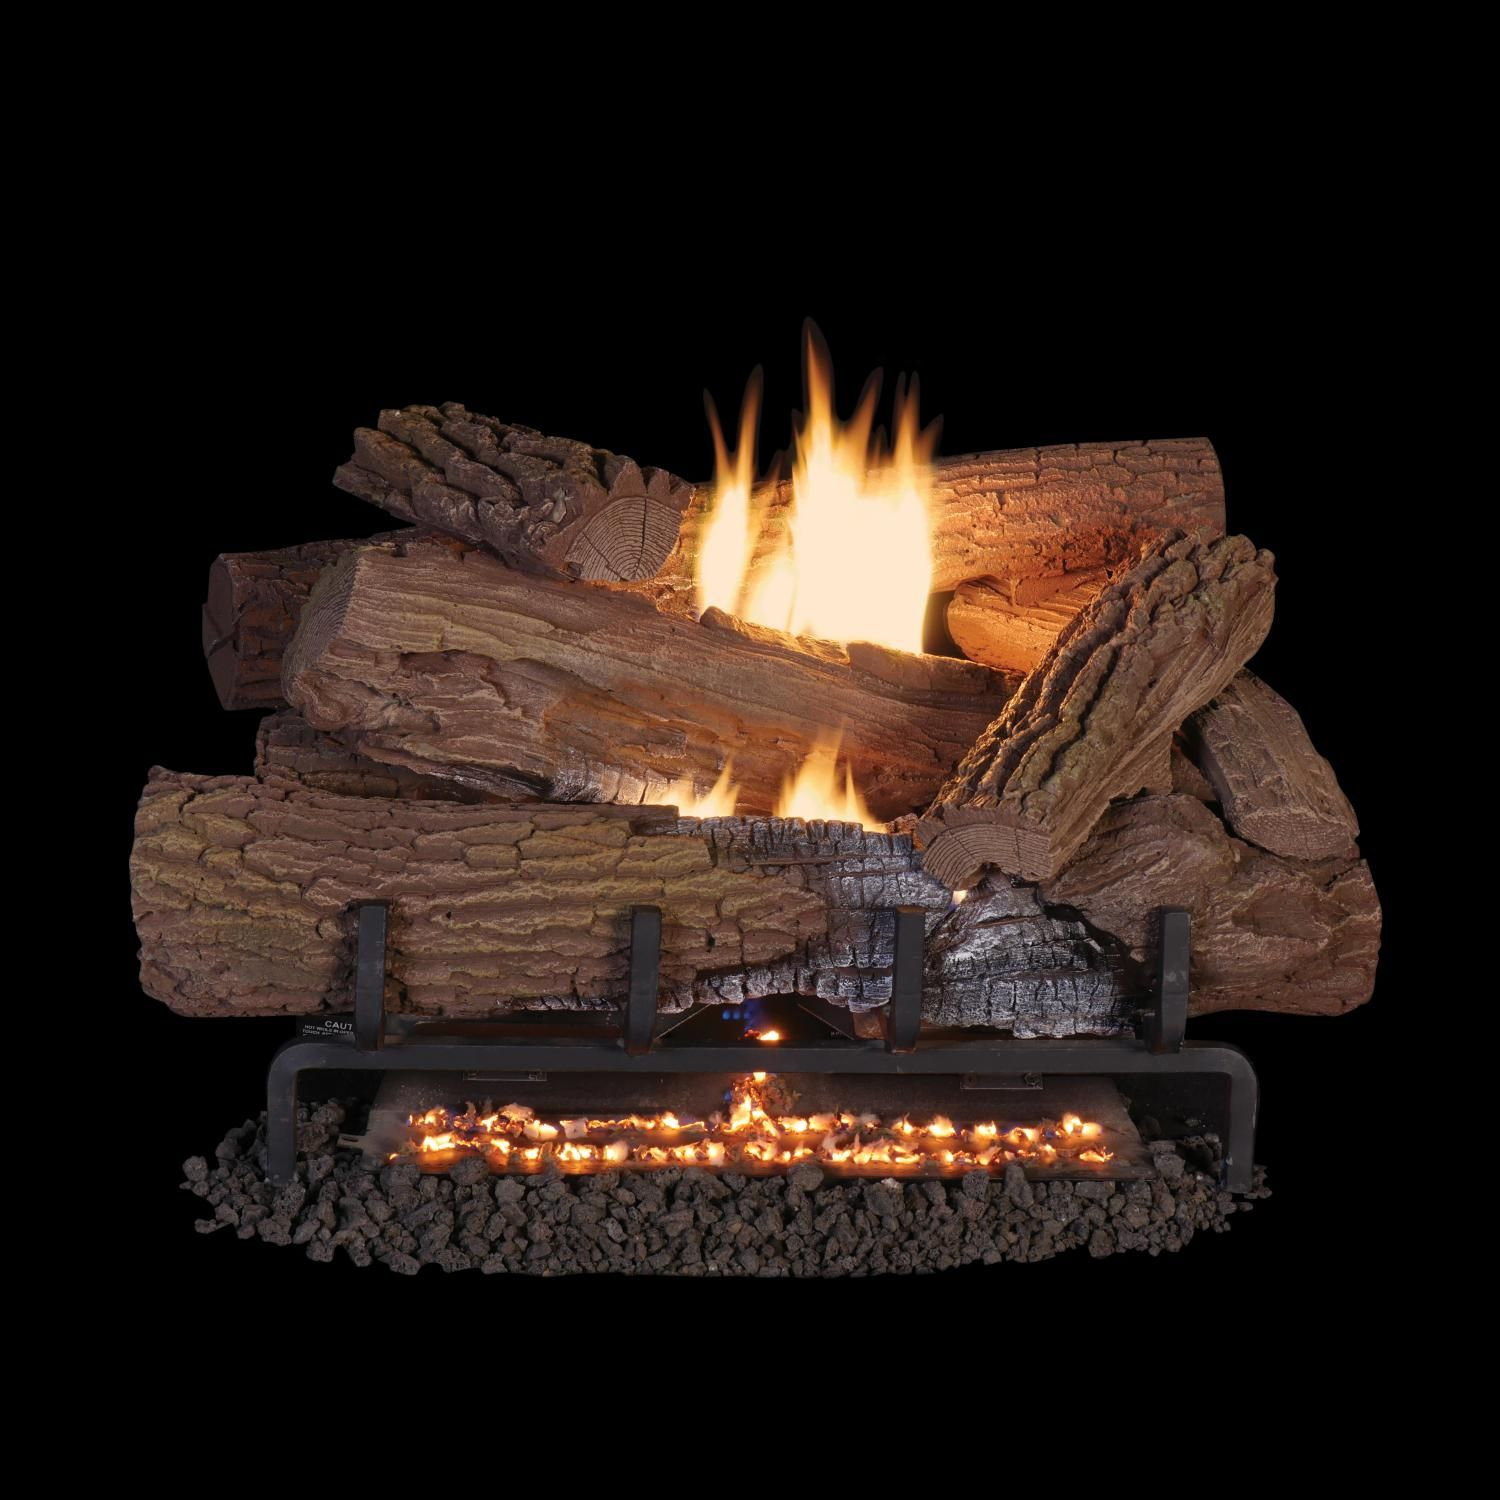 Superior Fireplaces 24 Inch Mossy Oak Gas Log Set With Vent Free